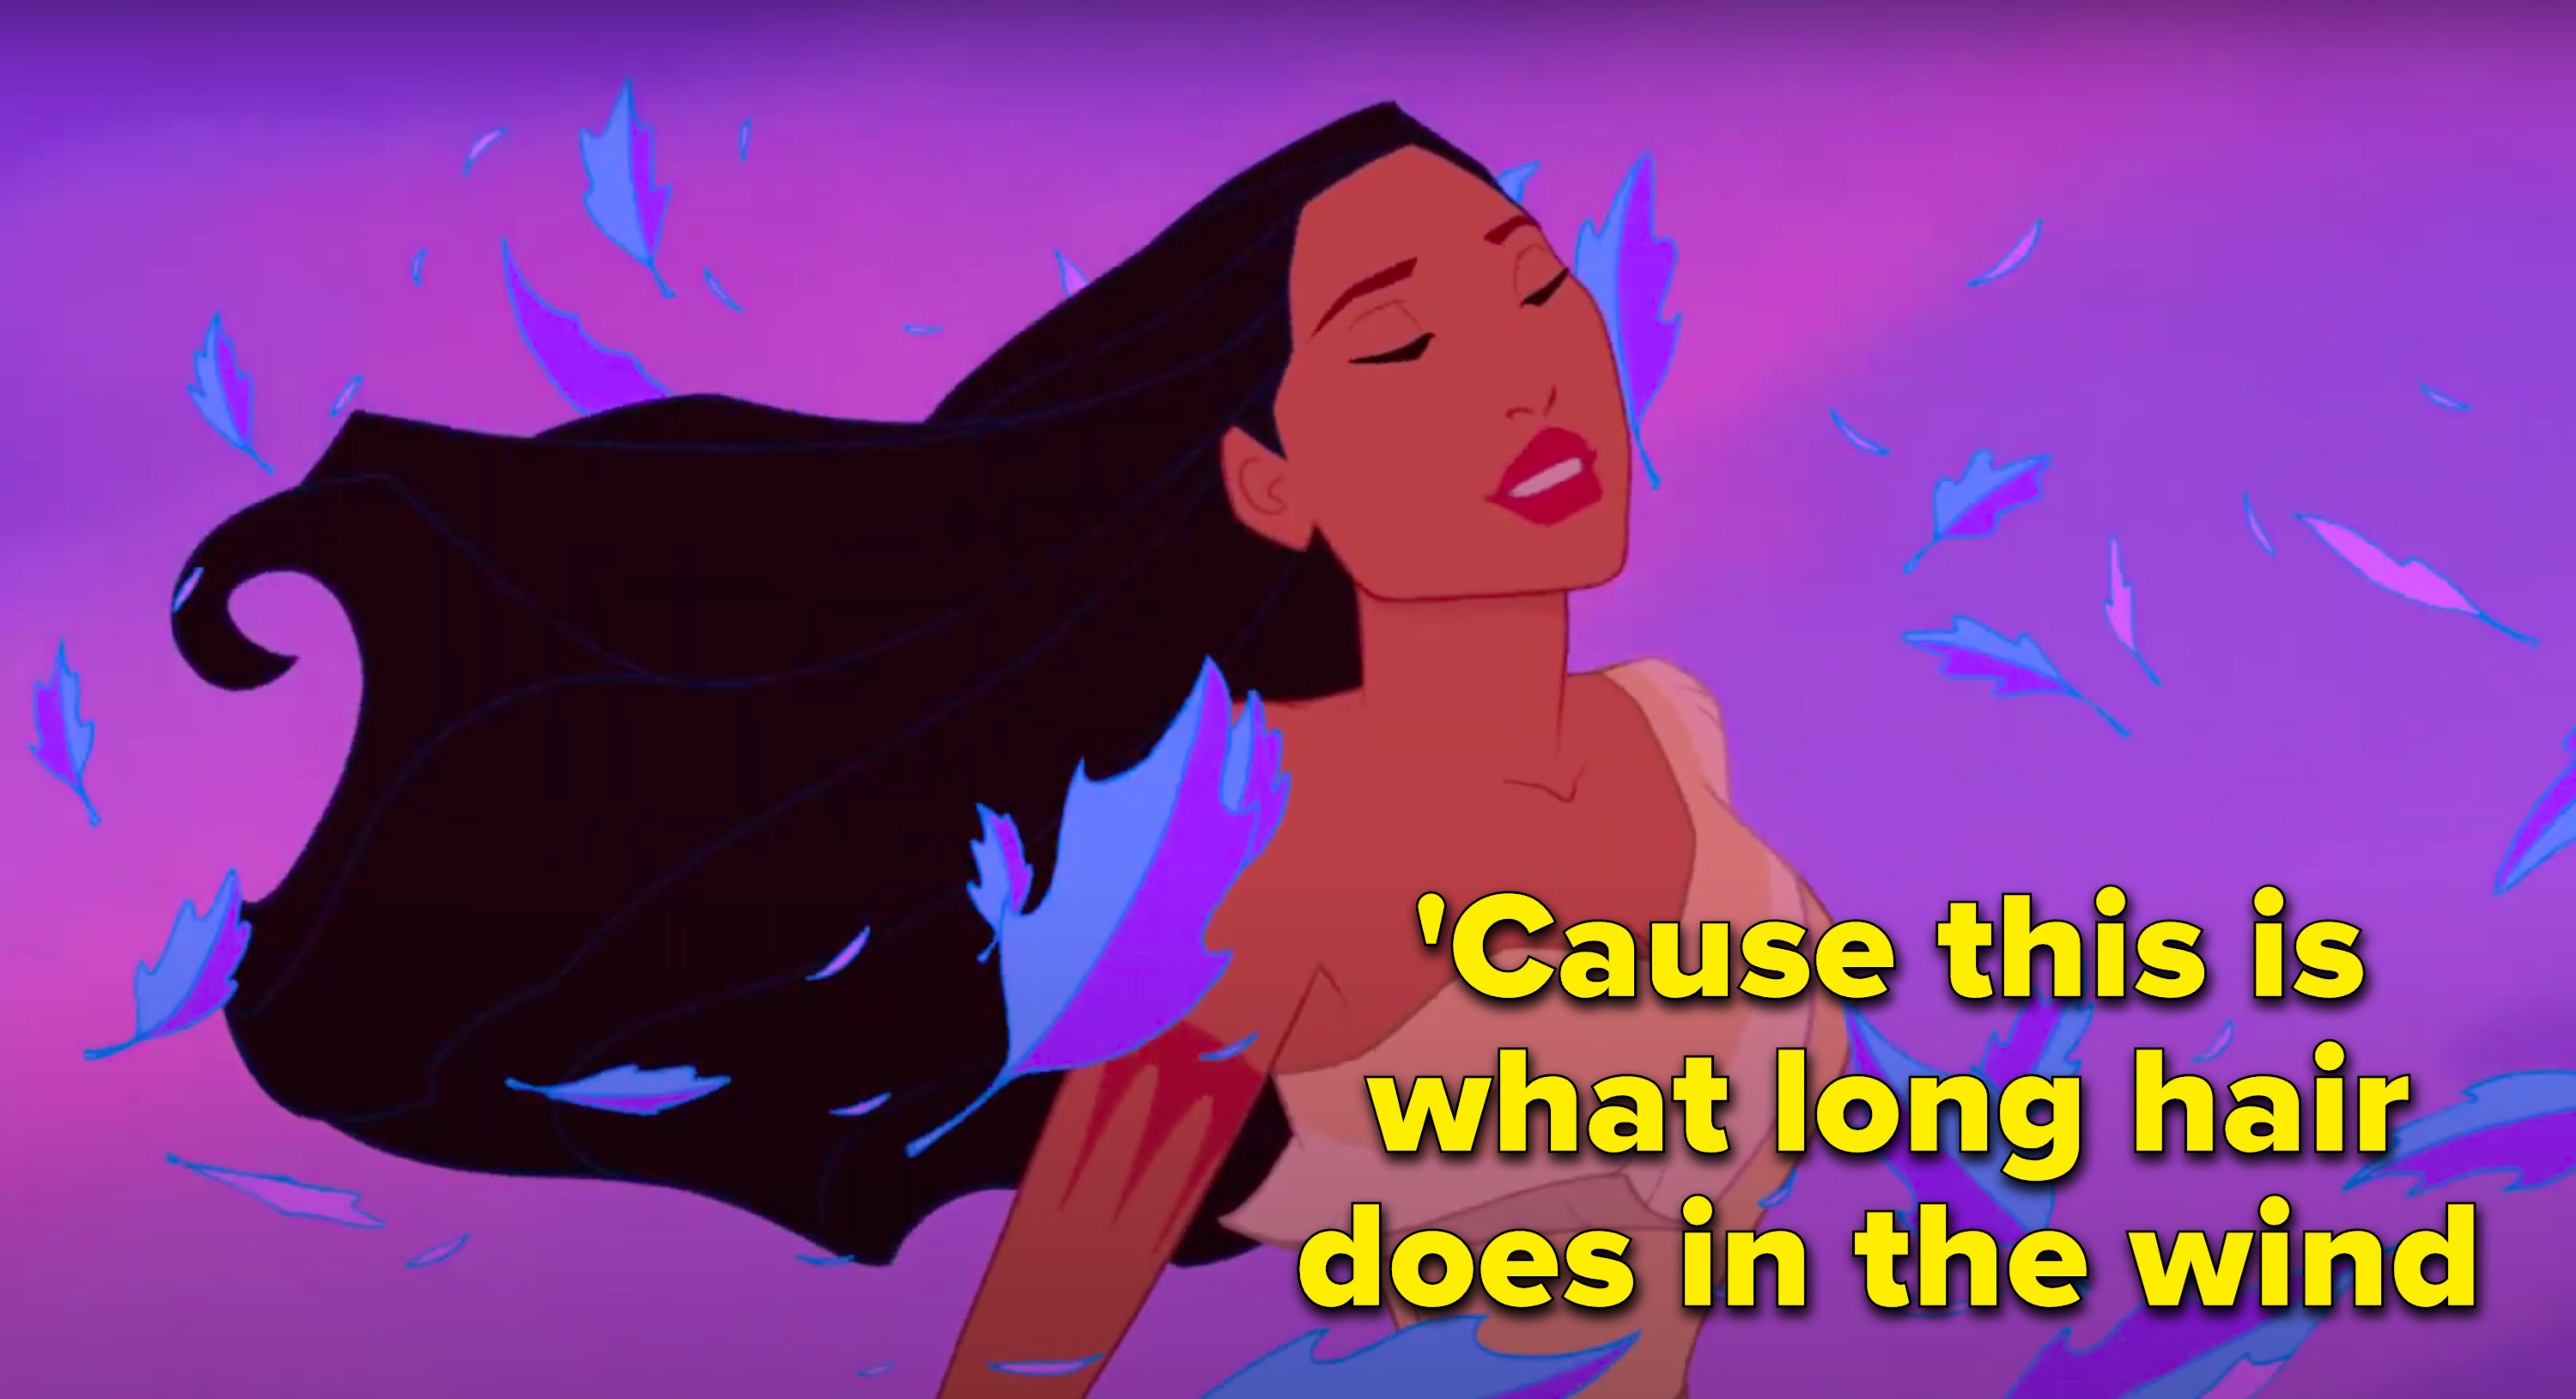 """'Cause this is what long hair does in the wind"" written next to Pocahontas with lovely hair in the wind"